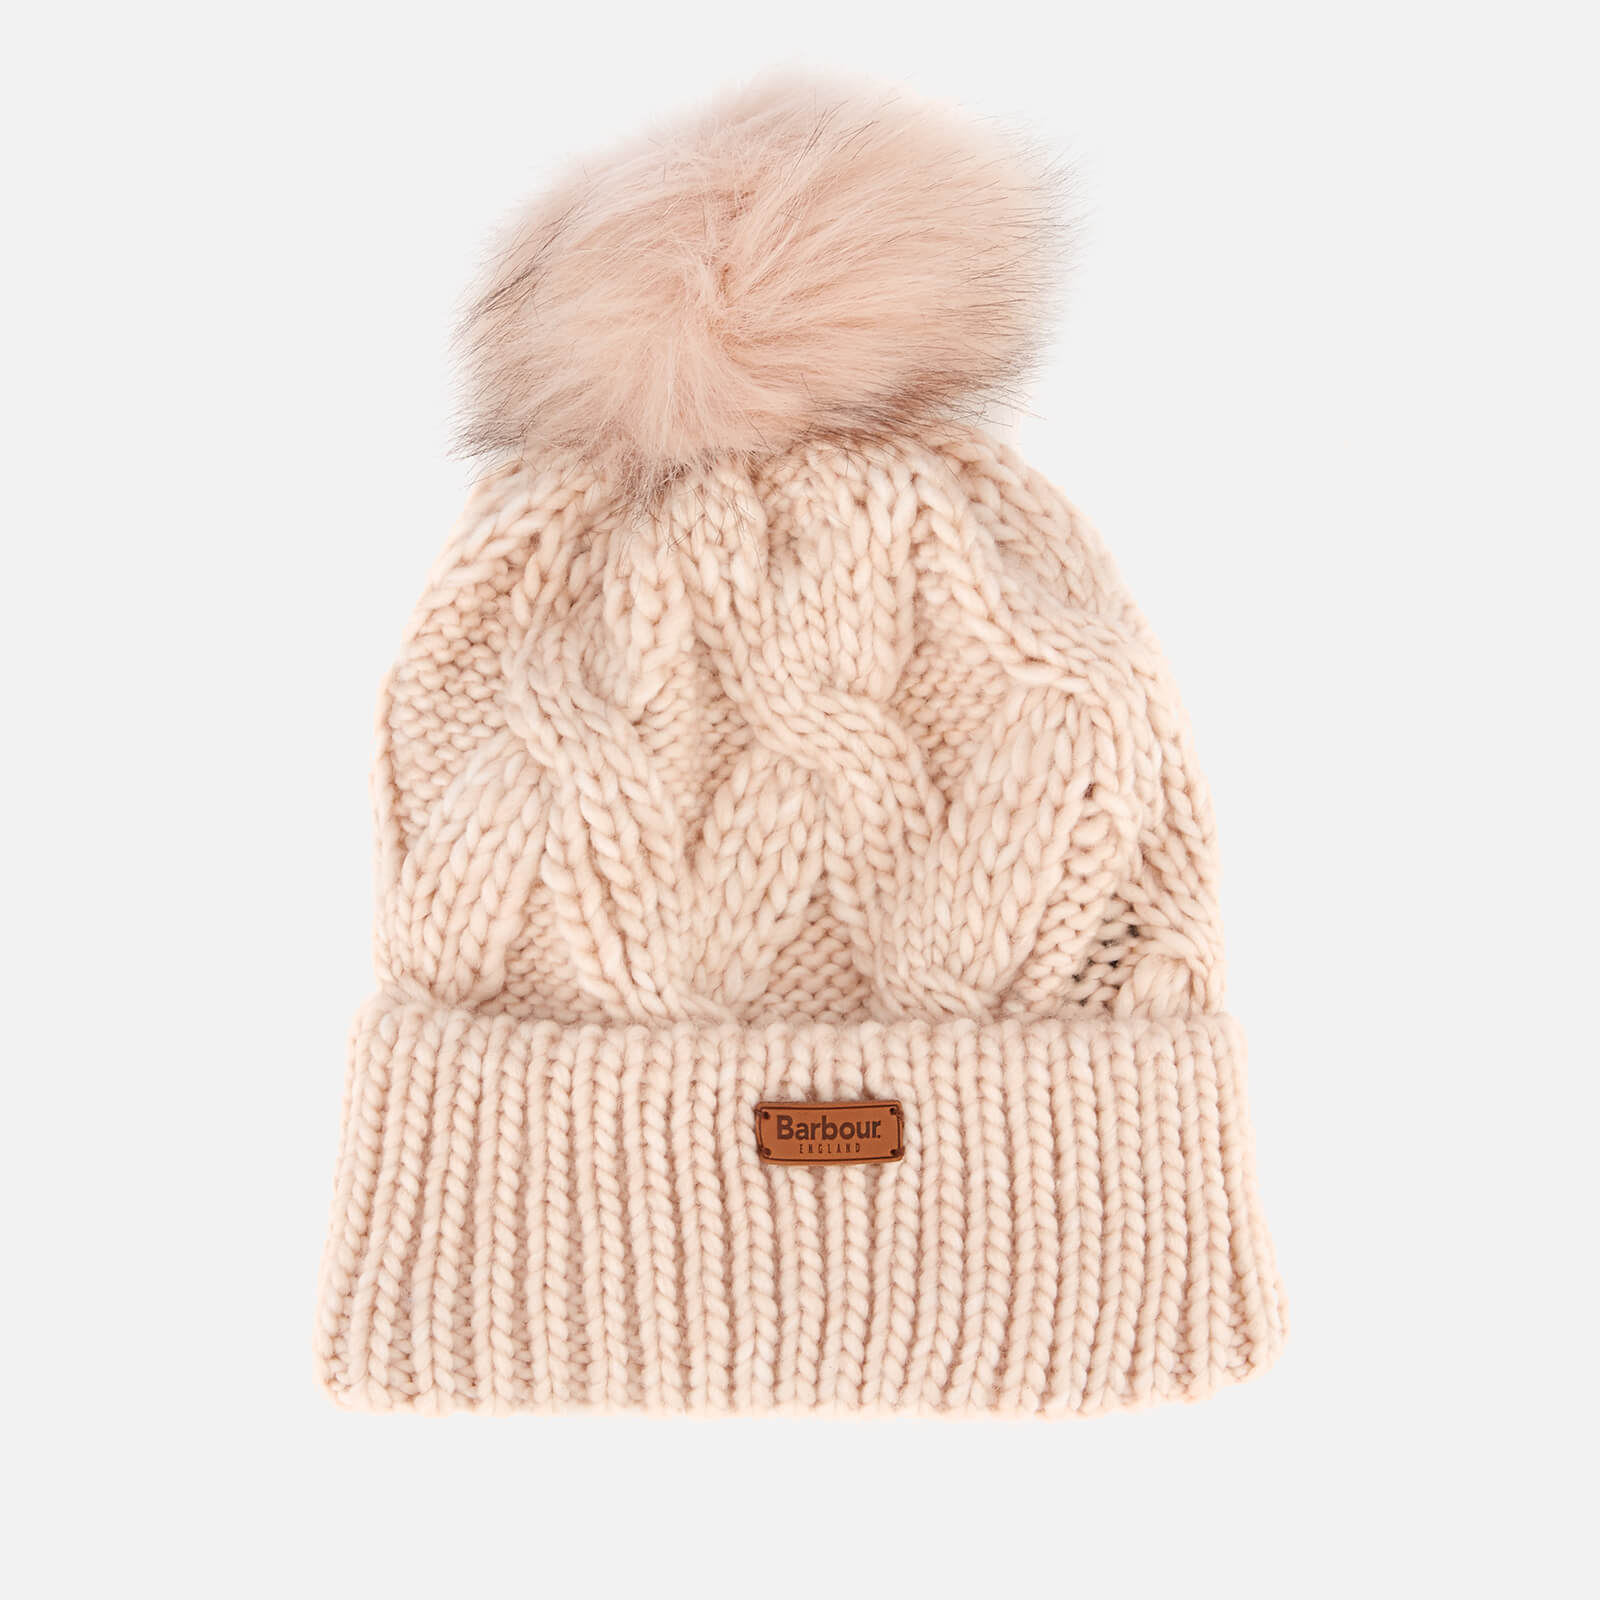 a5a186fda2756 Barbour Women s Bridport Pom Beanie - Pink Womens Accessories ...